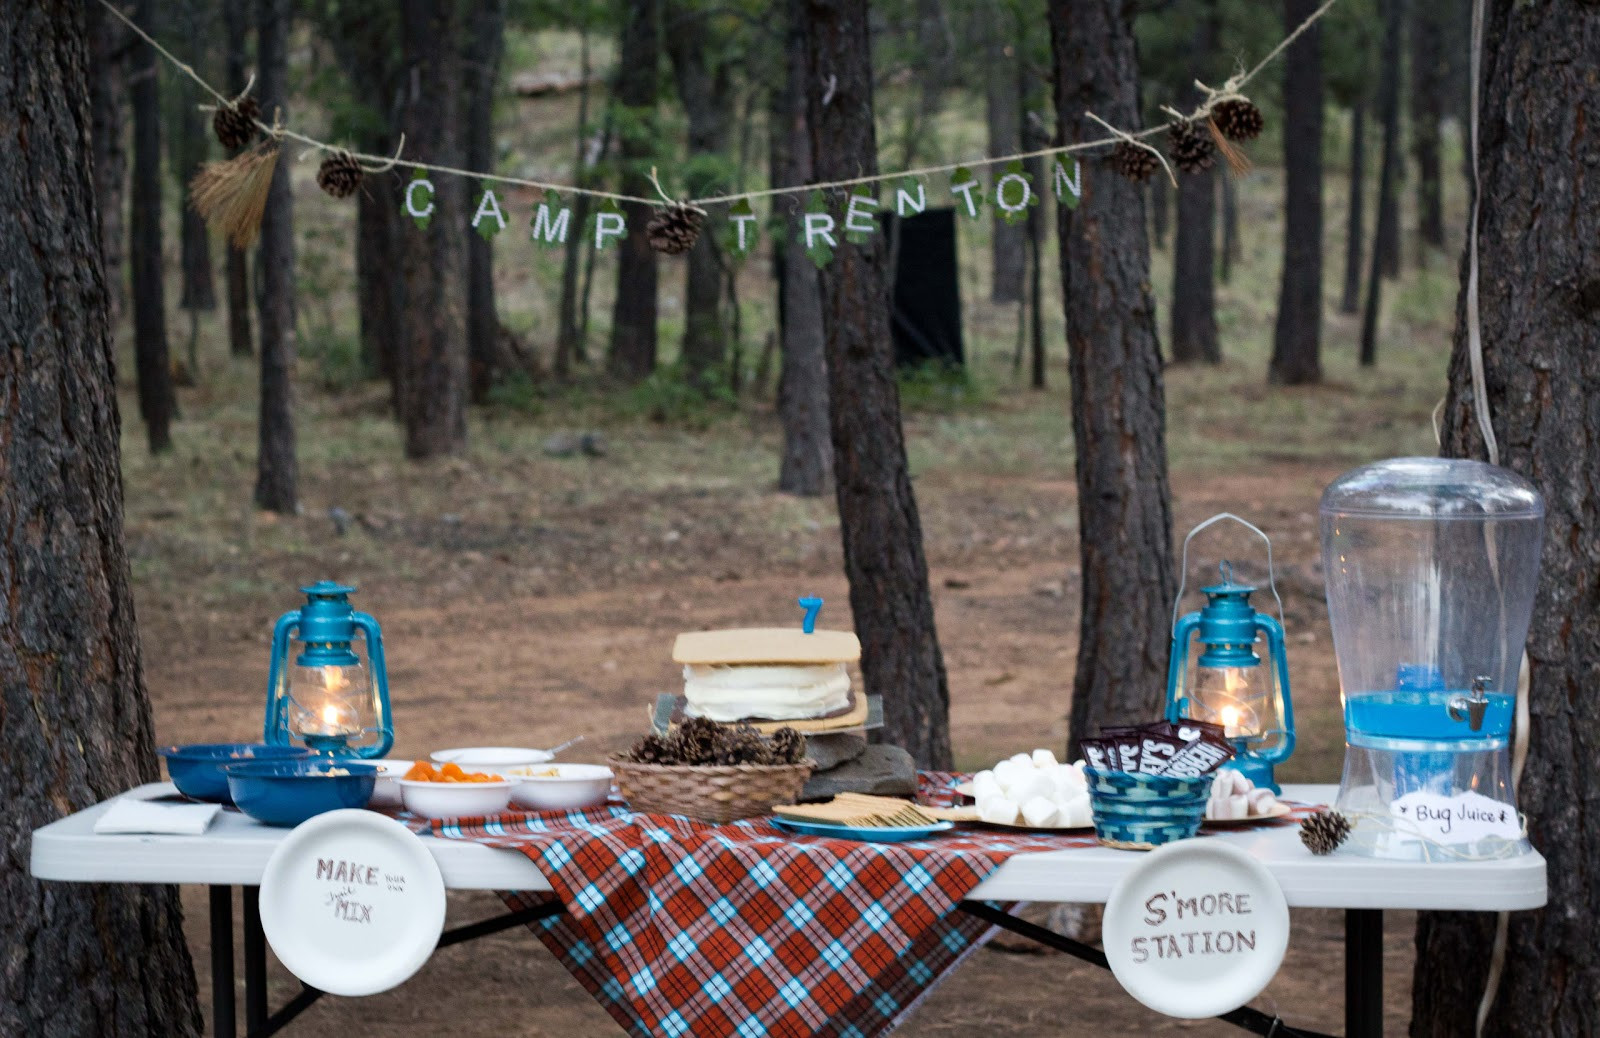 Best ideas about Camping Ideas For Adults . Save or Pin Camping Birthday Adventure My Insanity Now.